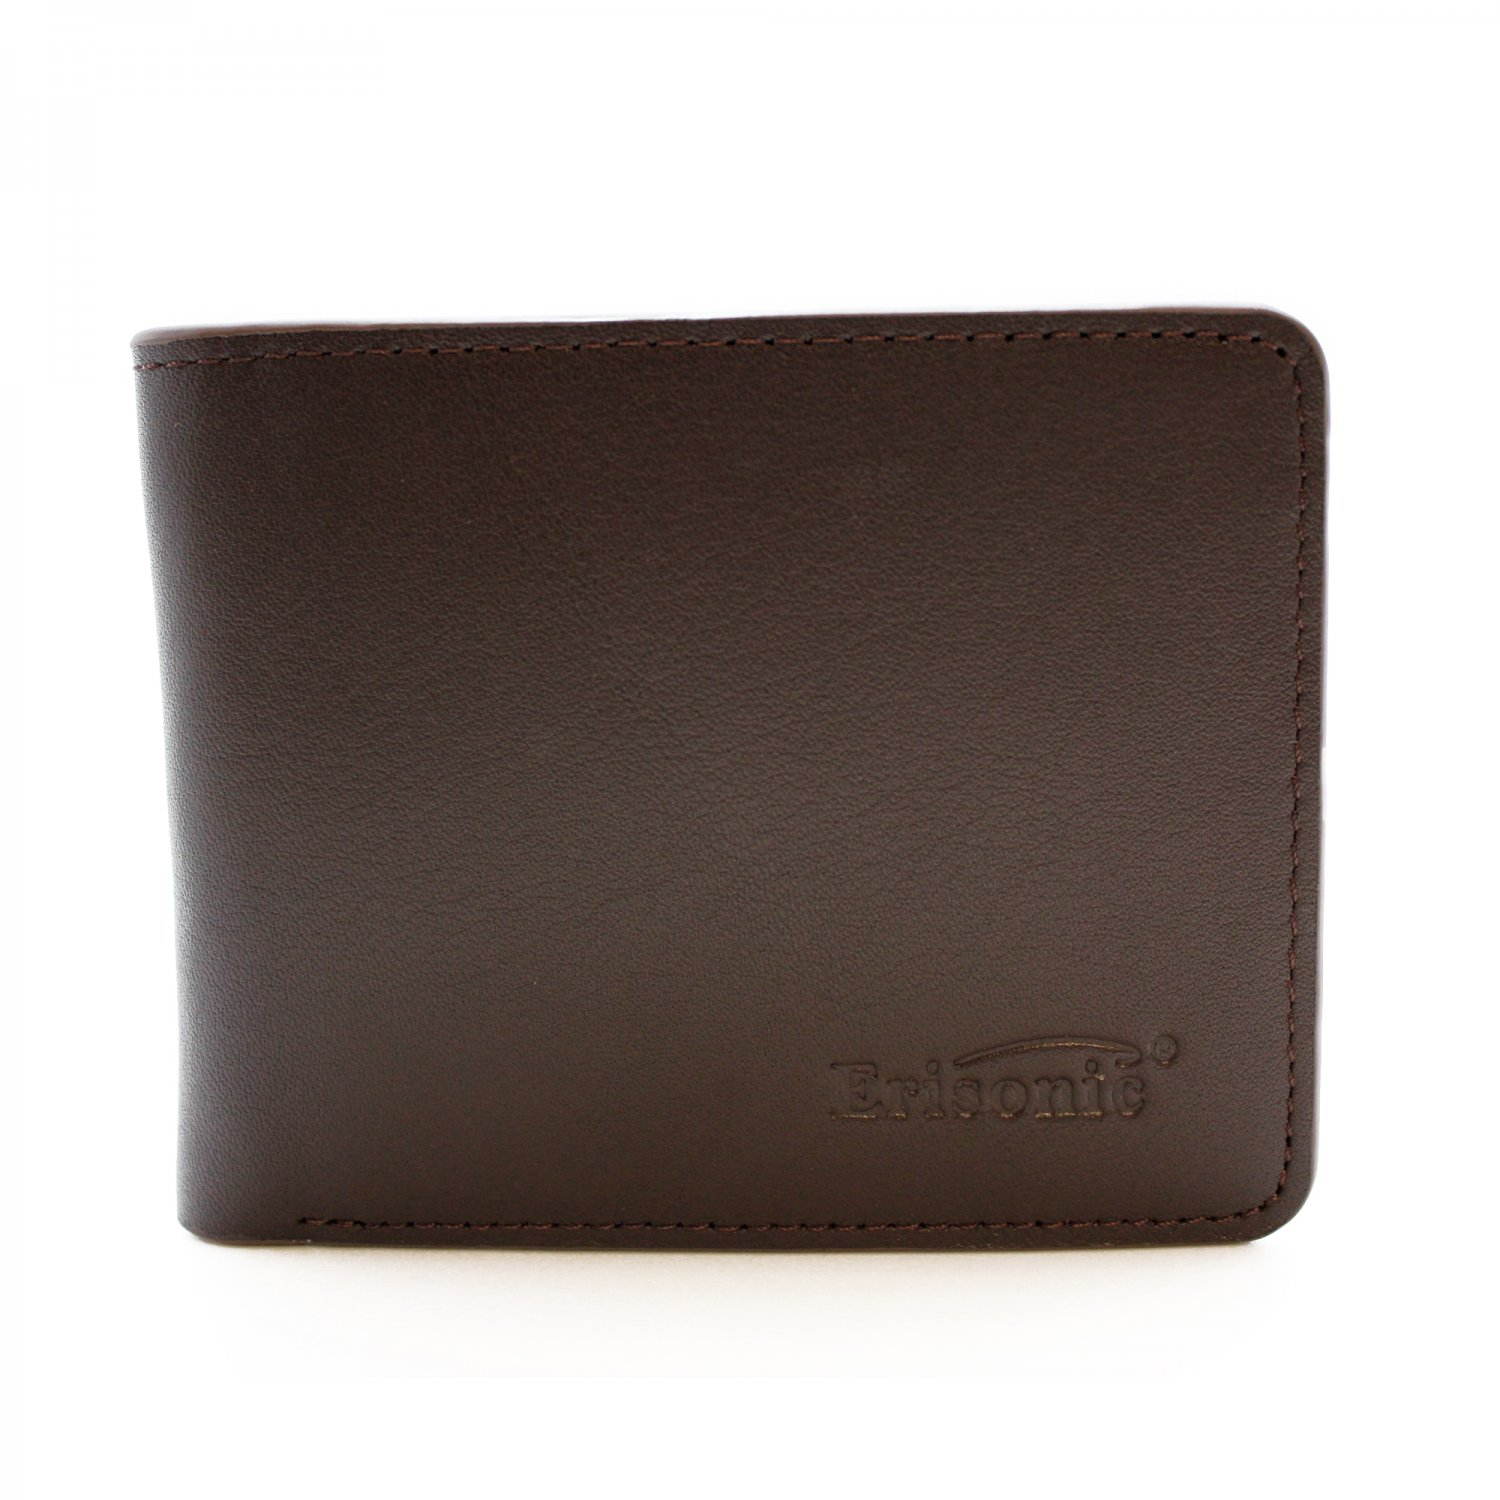 Erisonic Leather Smart Wallet Bluetooth Wallet with Iphone/Android app anti-lost for men